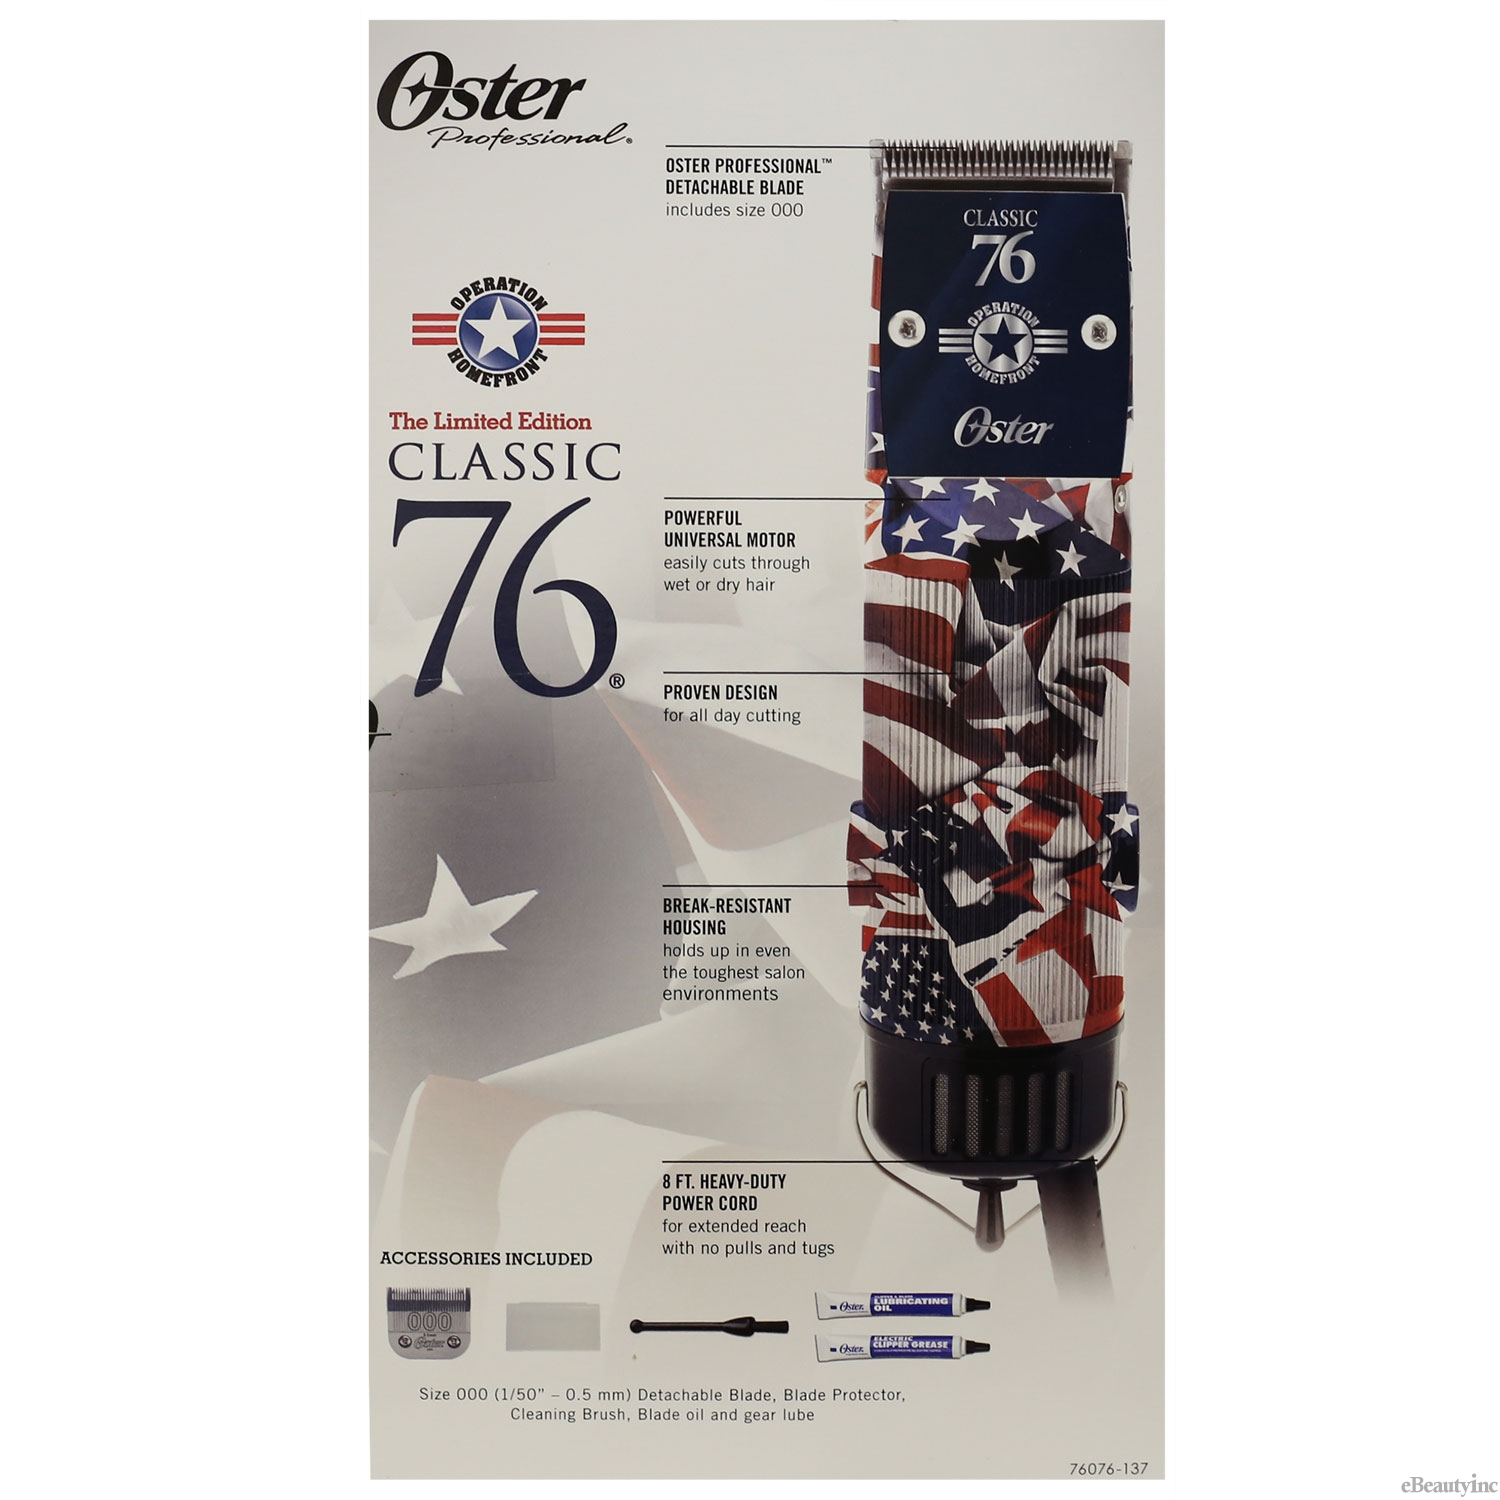 Image of Oster US Flag Operation Homefront Classic 76 Limited Edition Hair Clipper